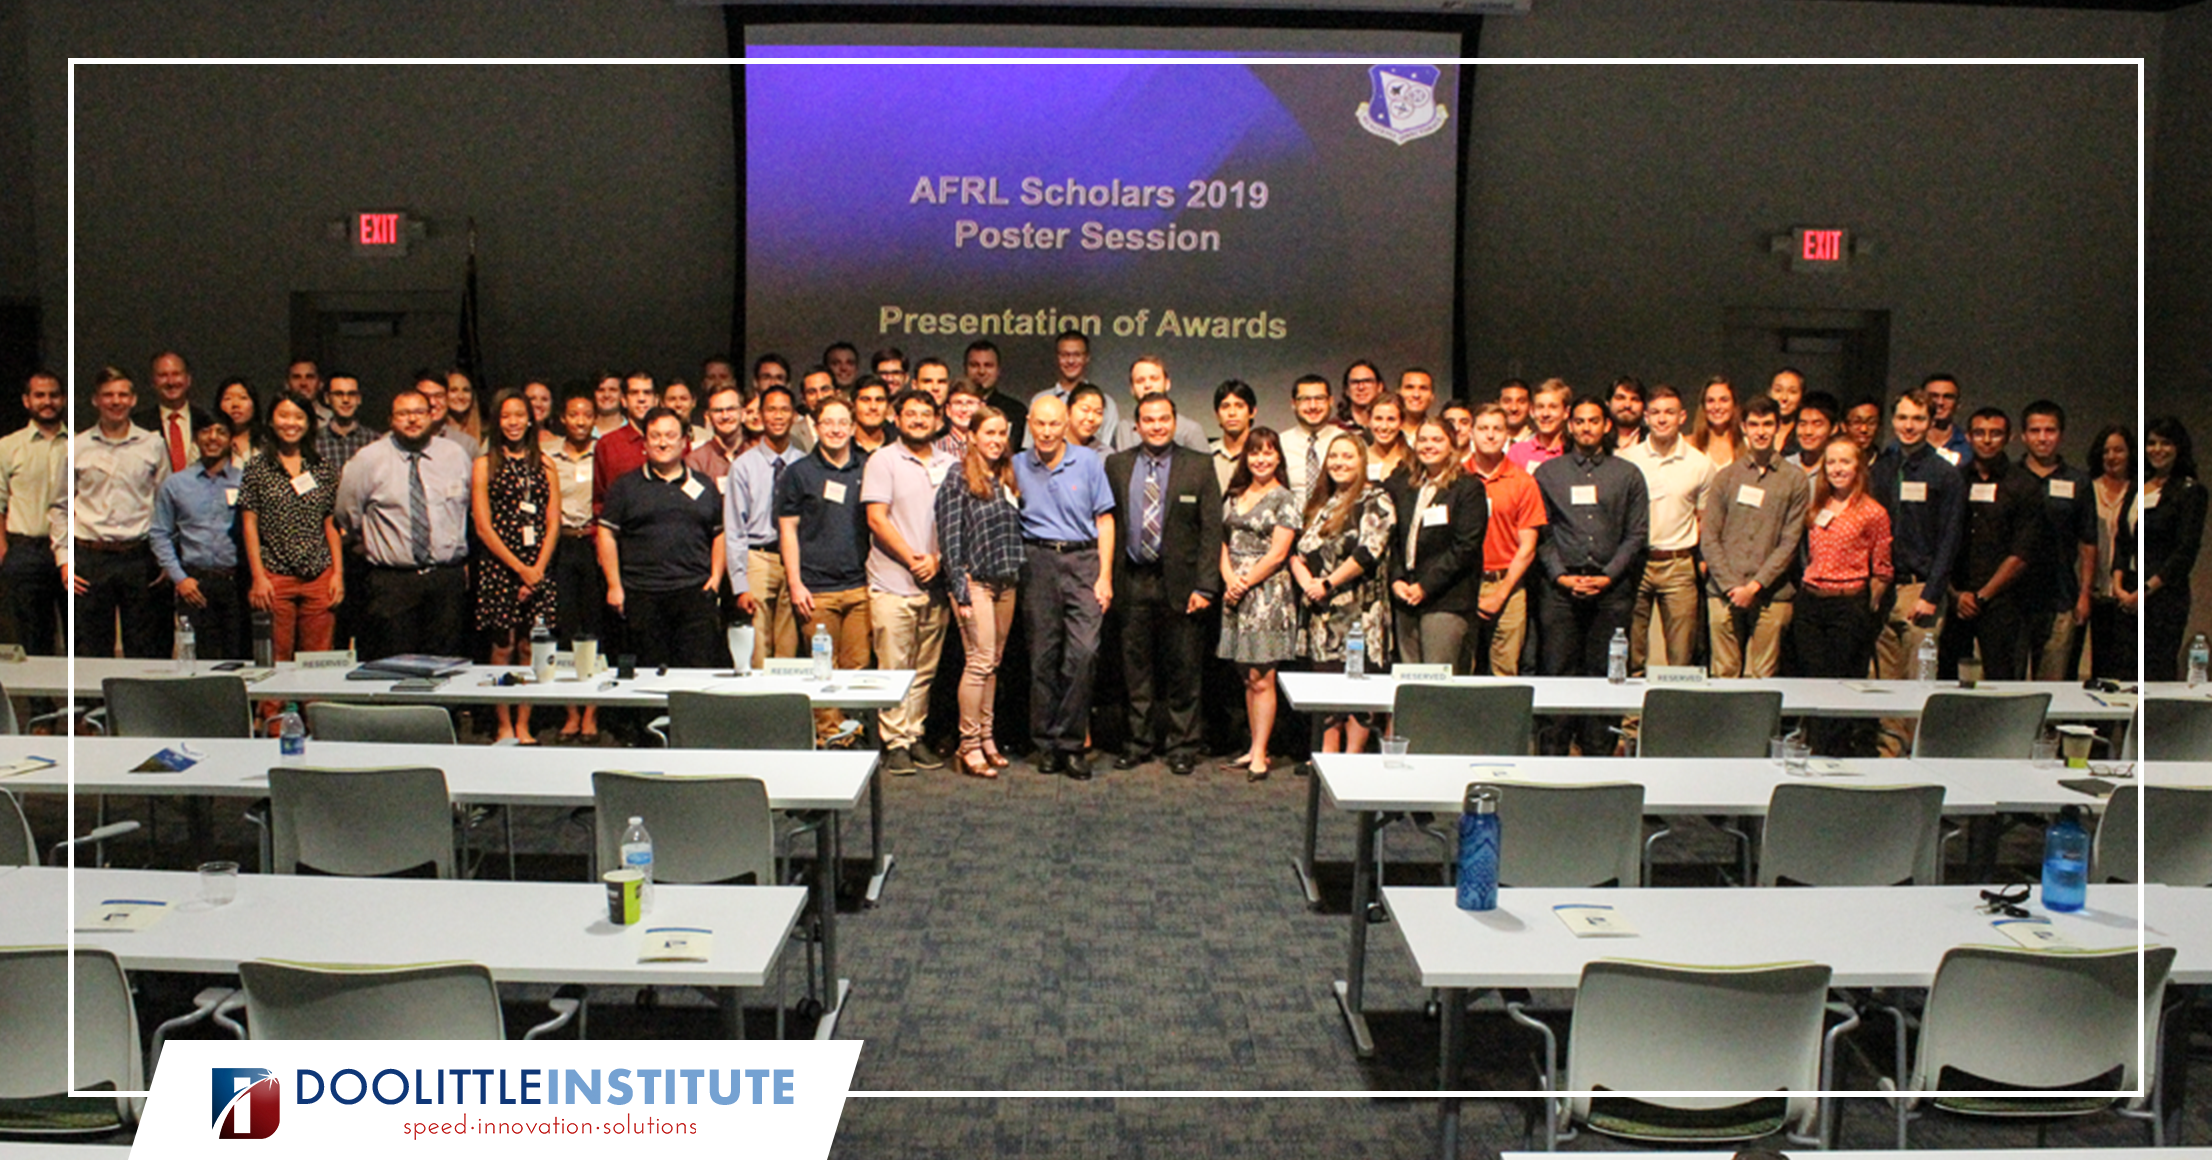 Dr. Story Musgrave poses with all 63 of the AFRL Scholars. Photo by the Doolittle Institute.